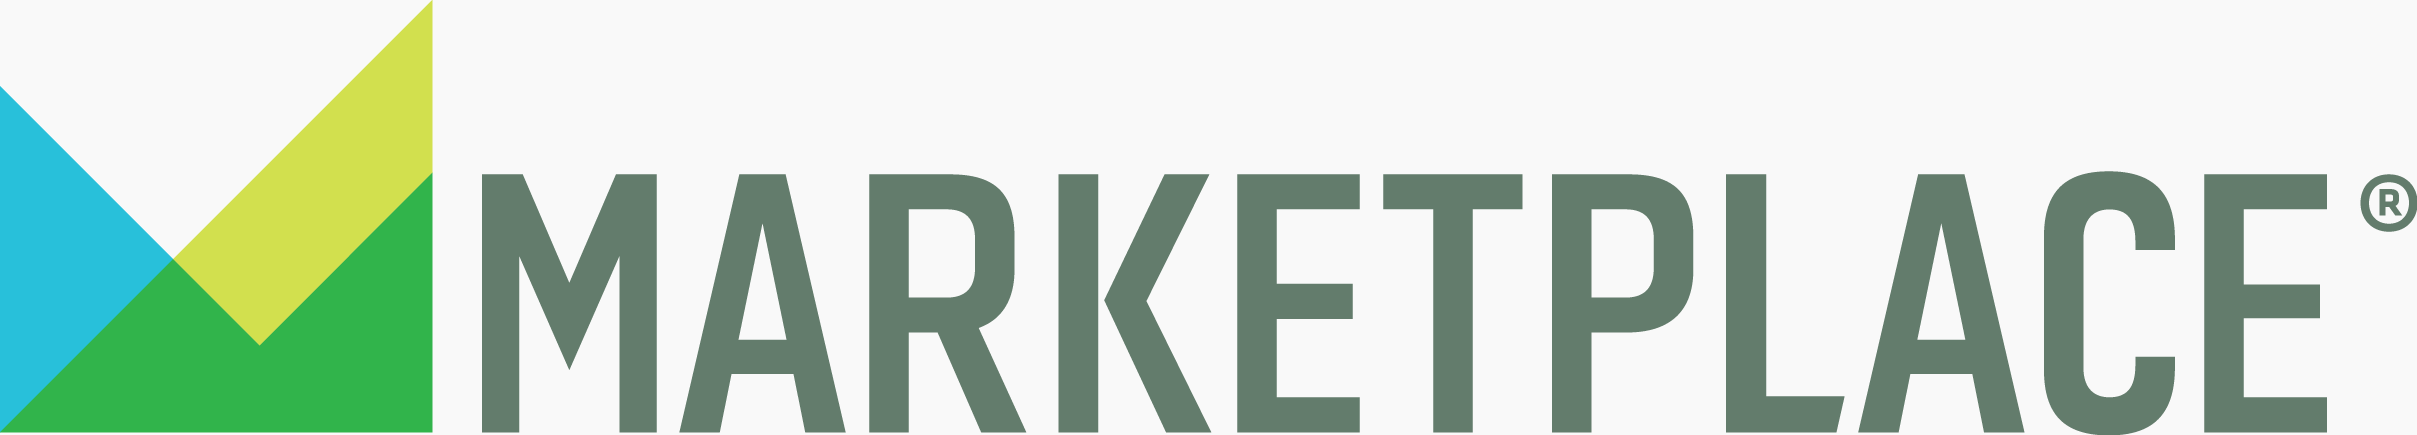 Logo-Marketplace